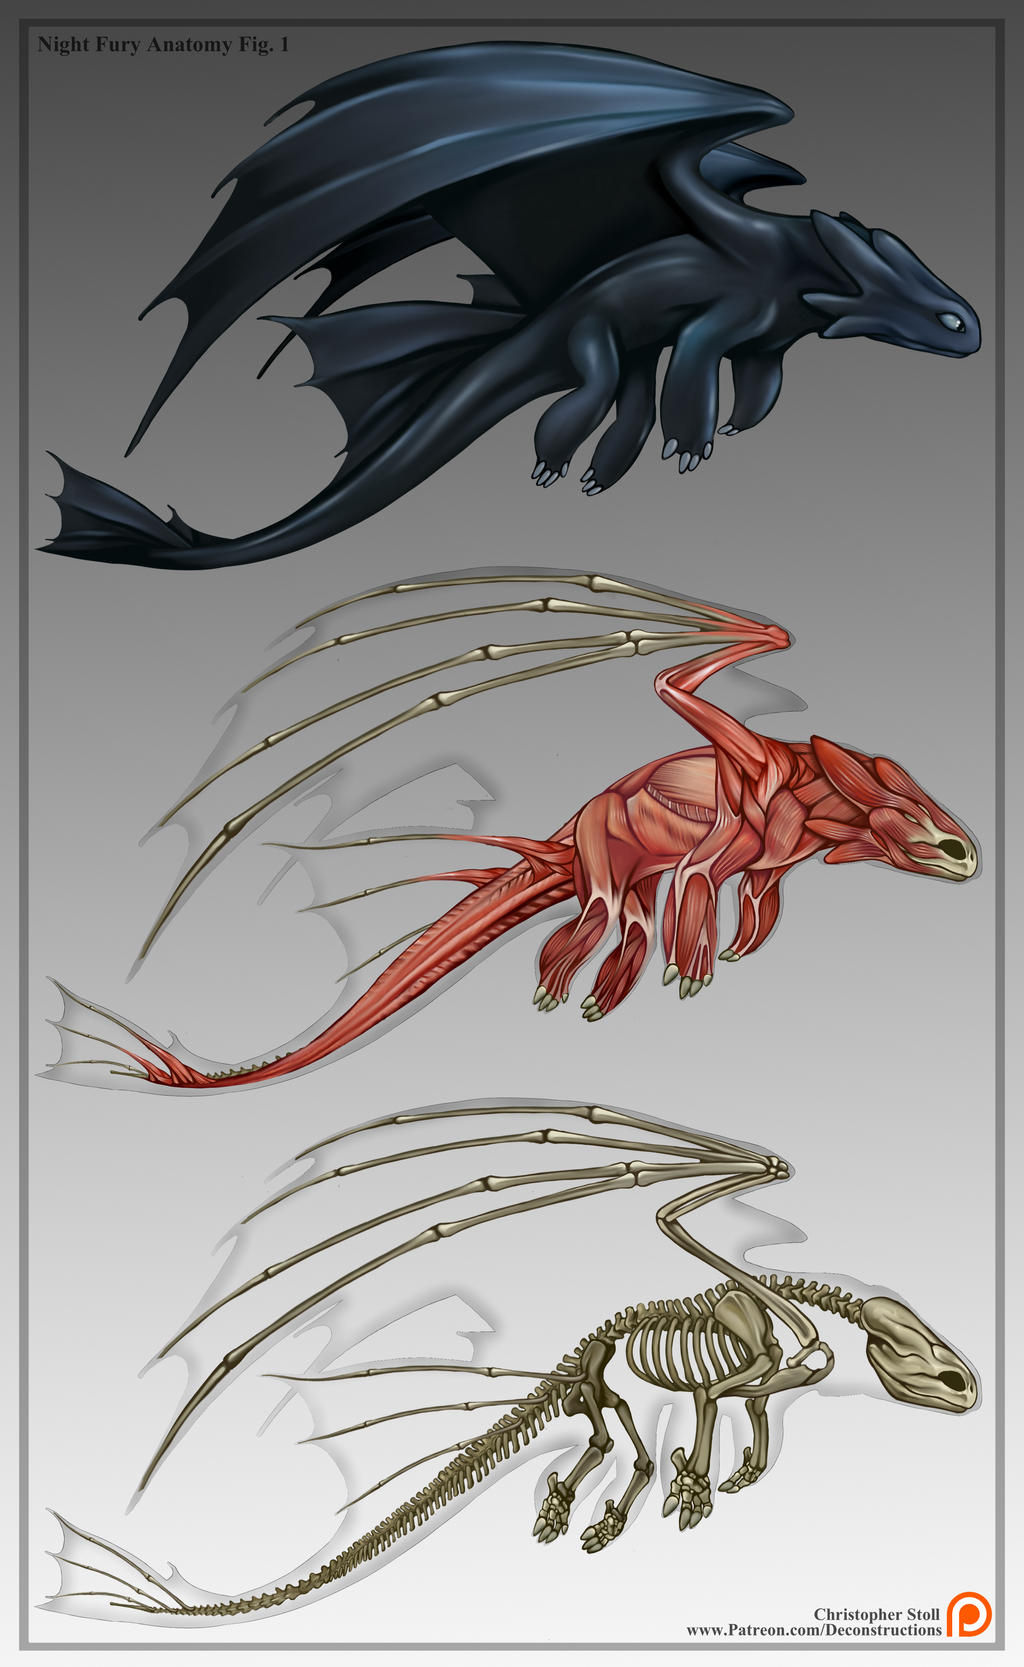 Toothless deconstruction night fury anatomy by christopher stoll on deviantart - Dragon fury nocturne ...